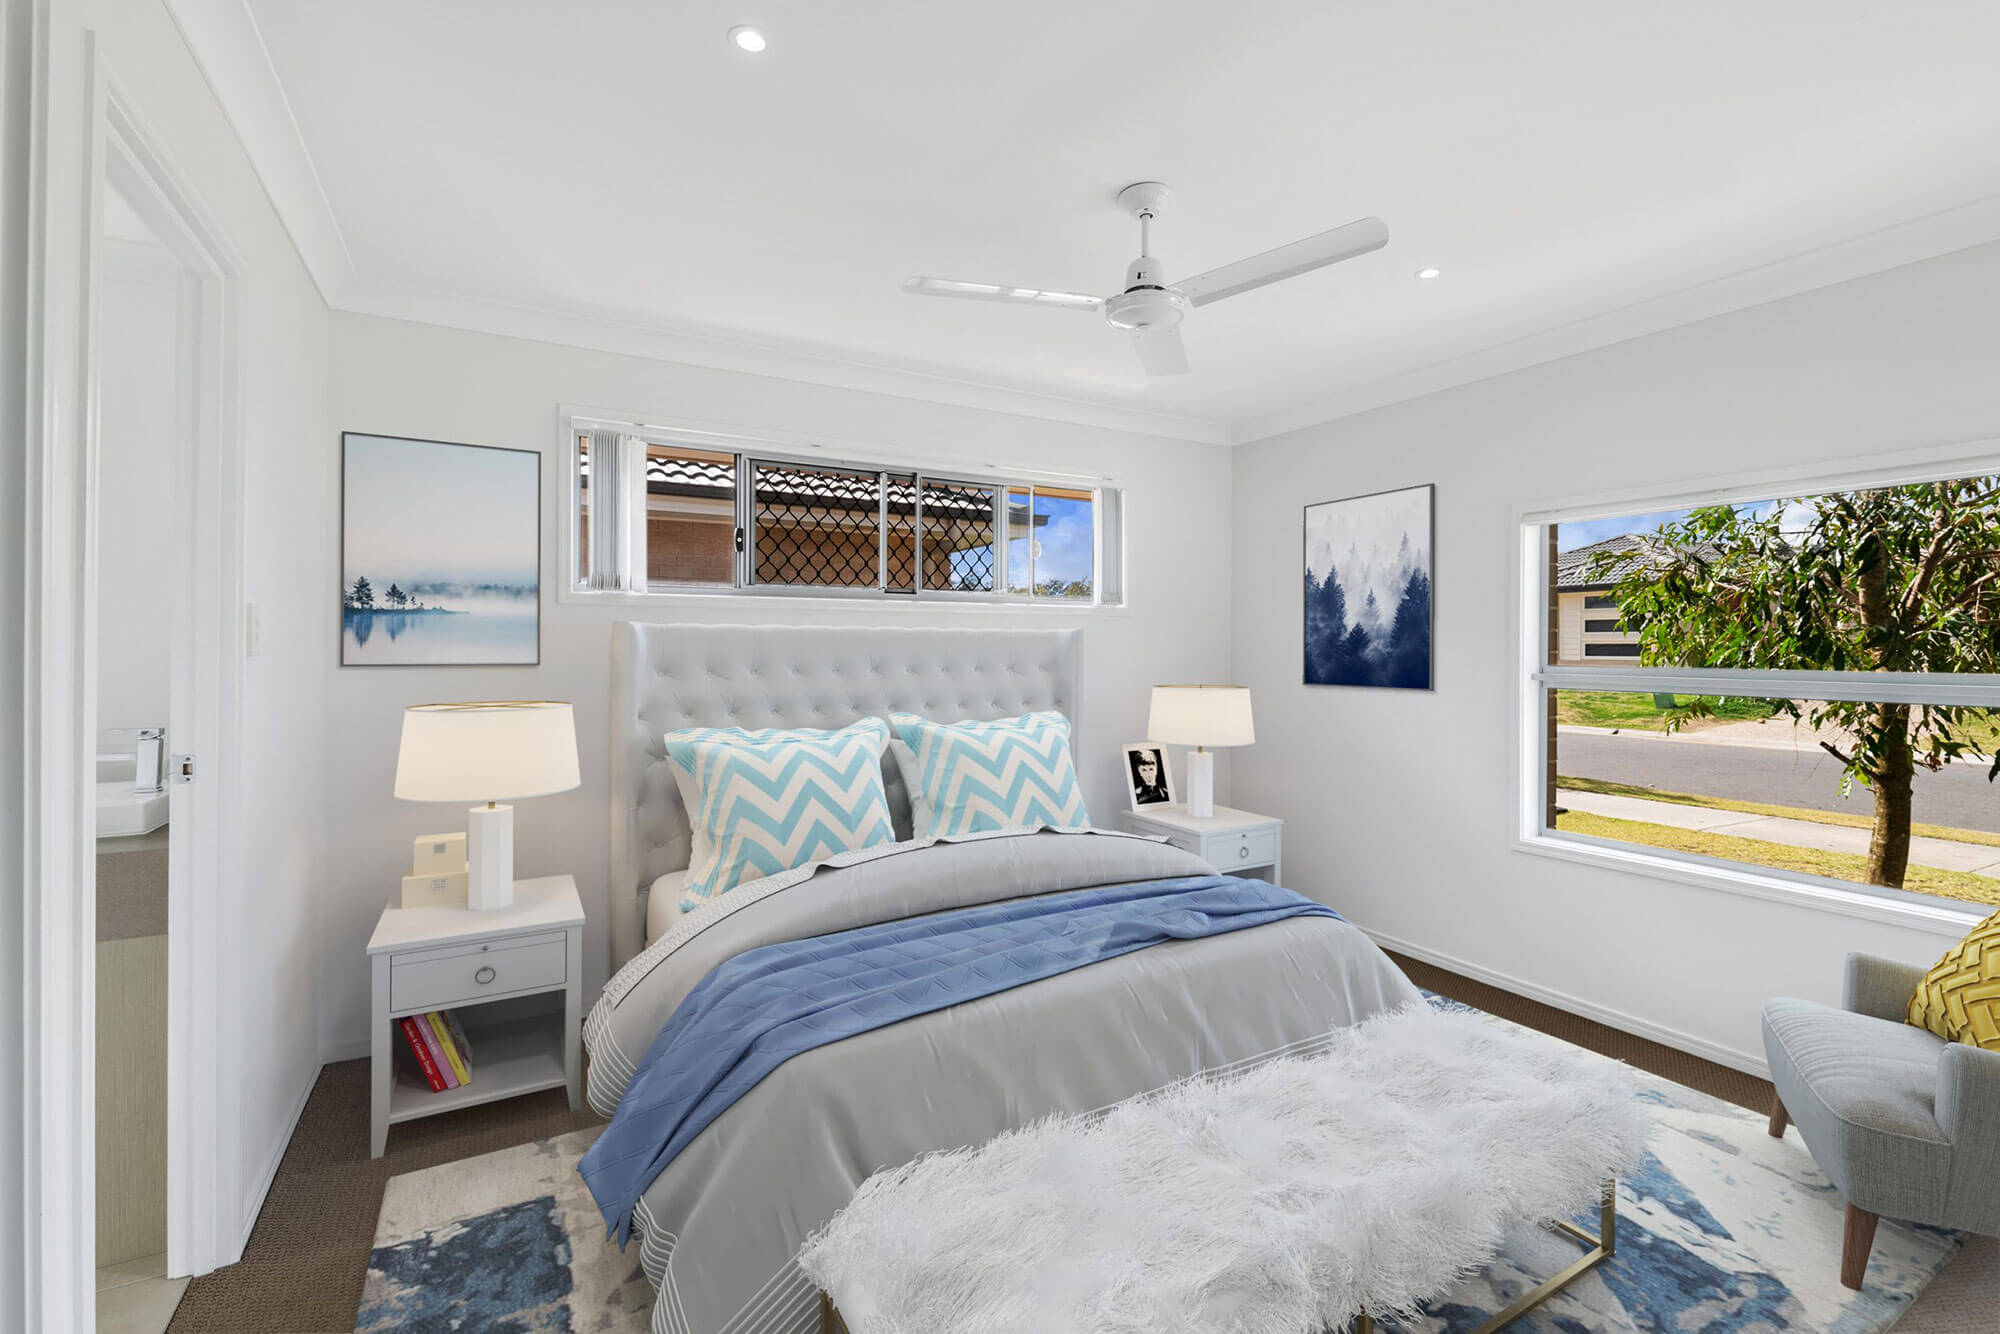 staged bedroom with blue and grey tones